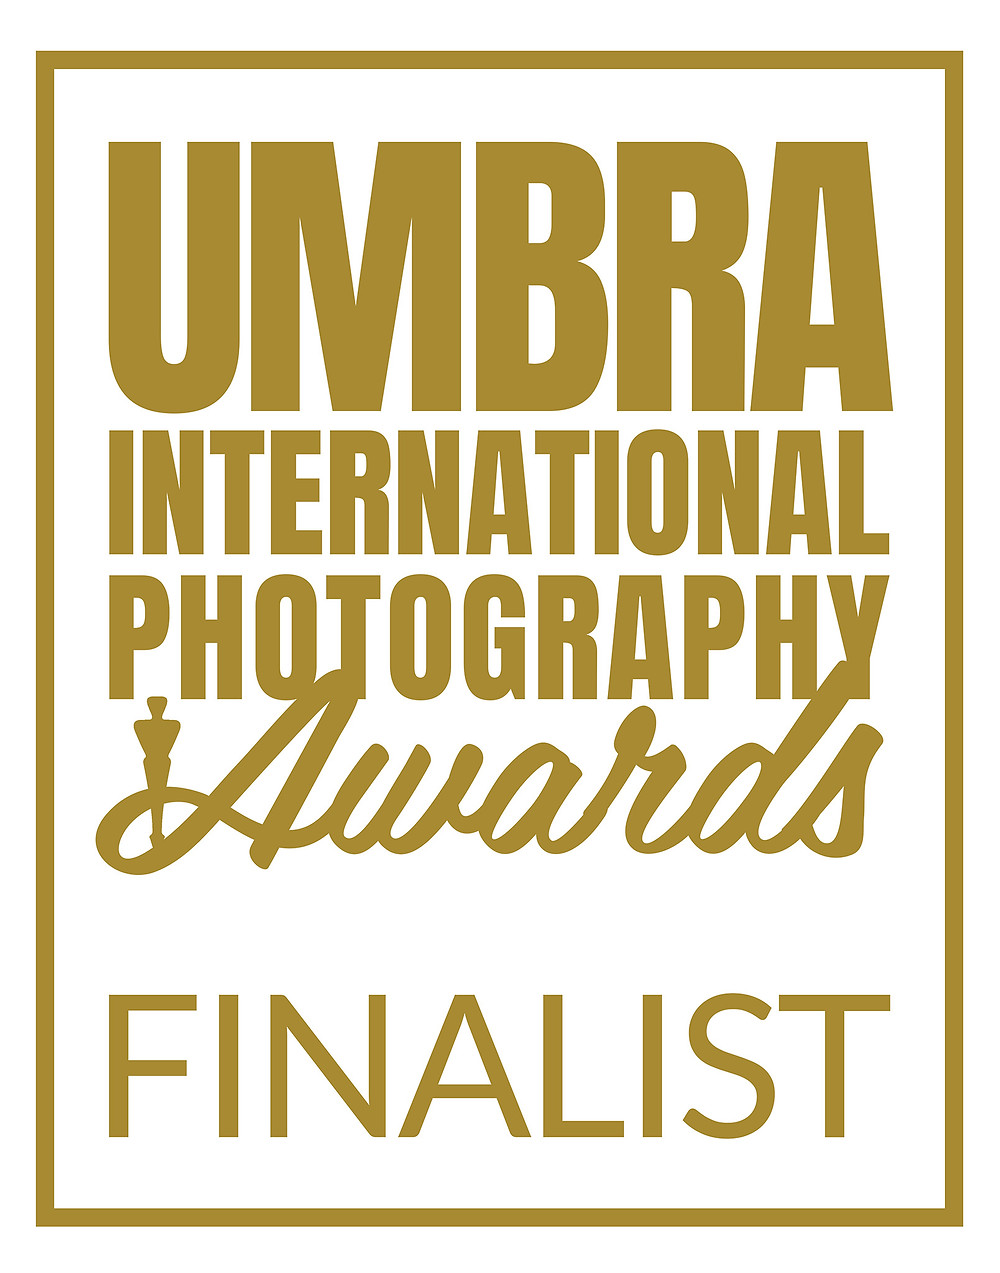 Umbra international photography awards finalist